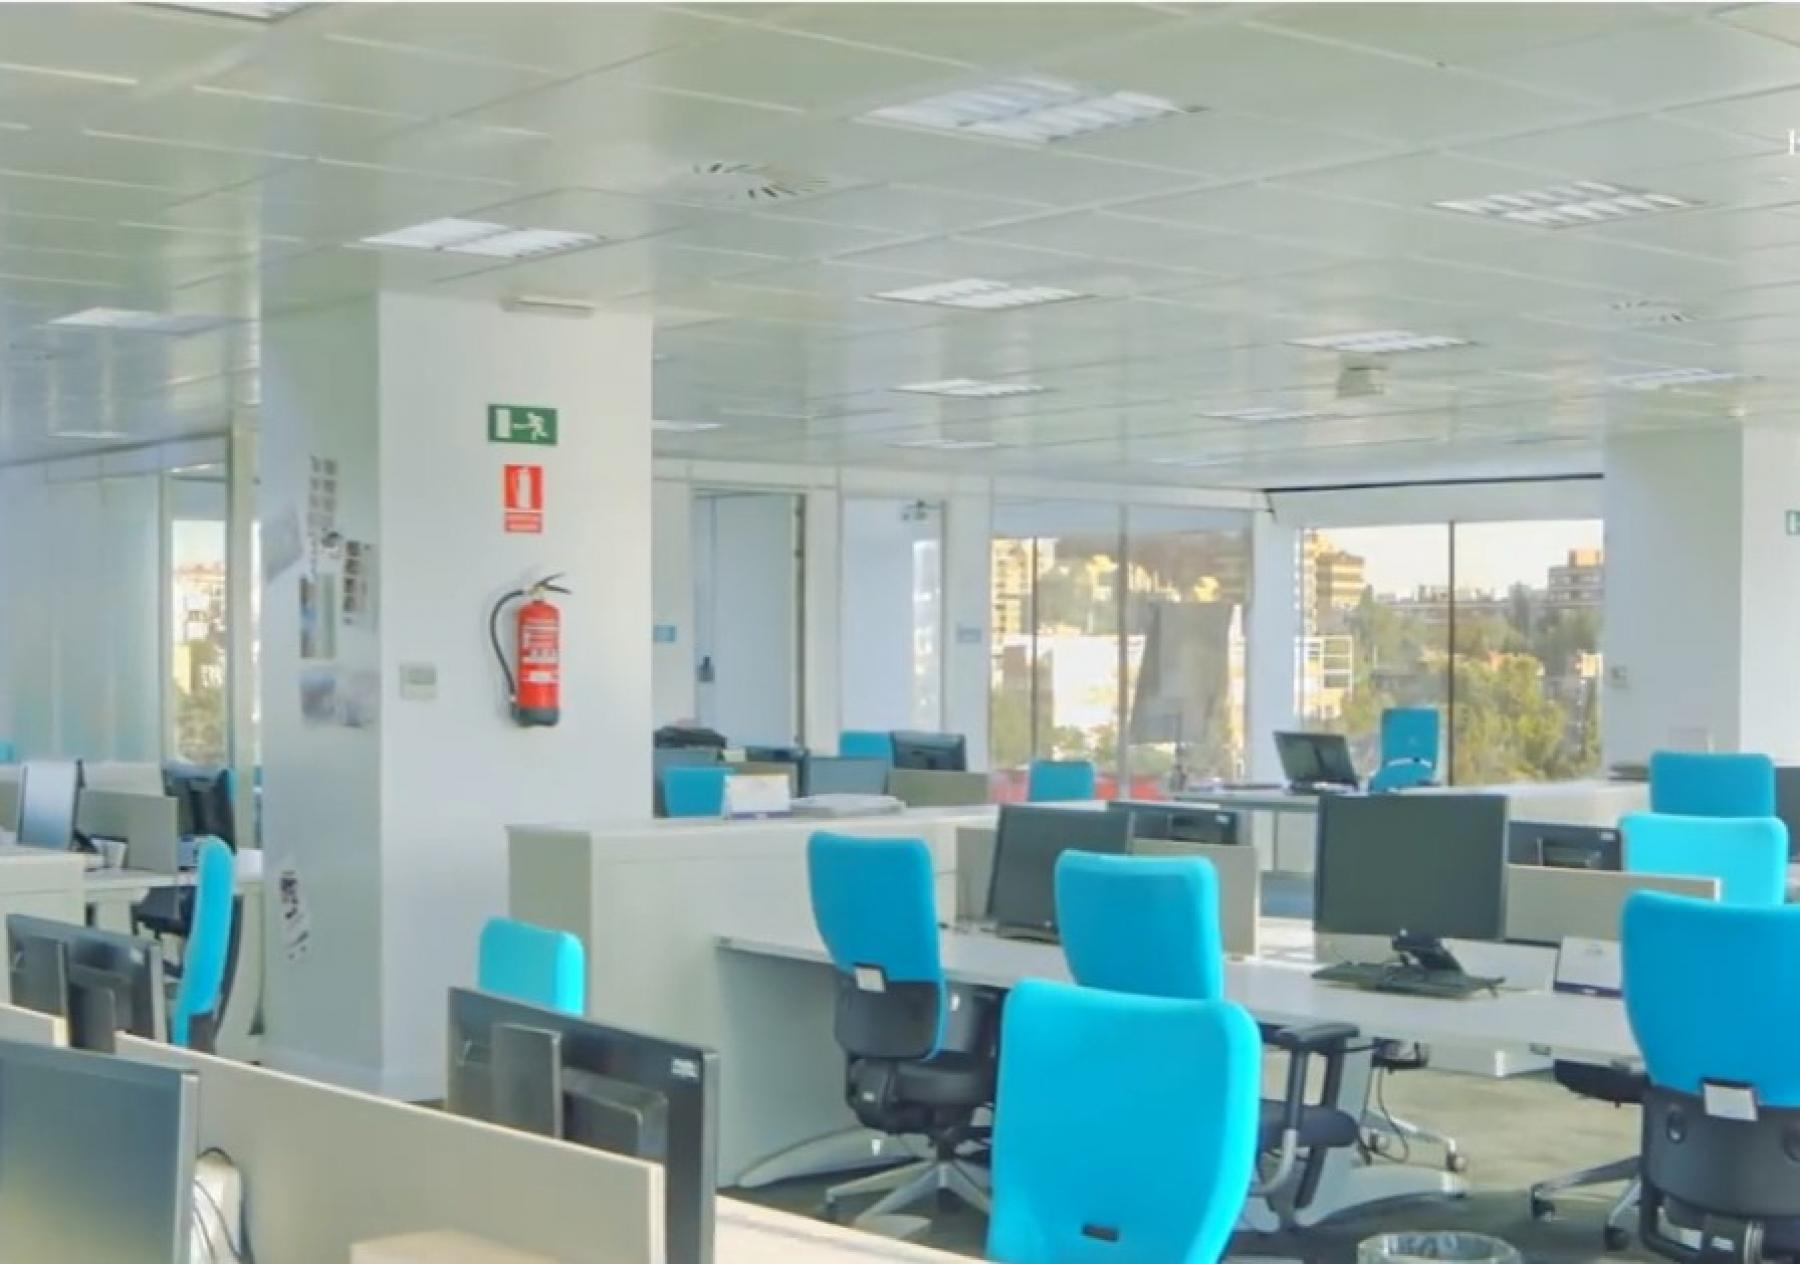 Your office could be like this in Calle Eucalipto 33